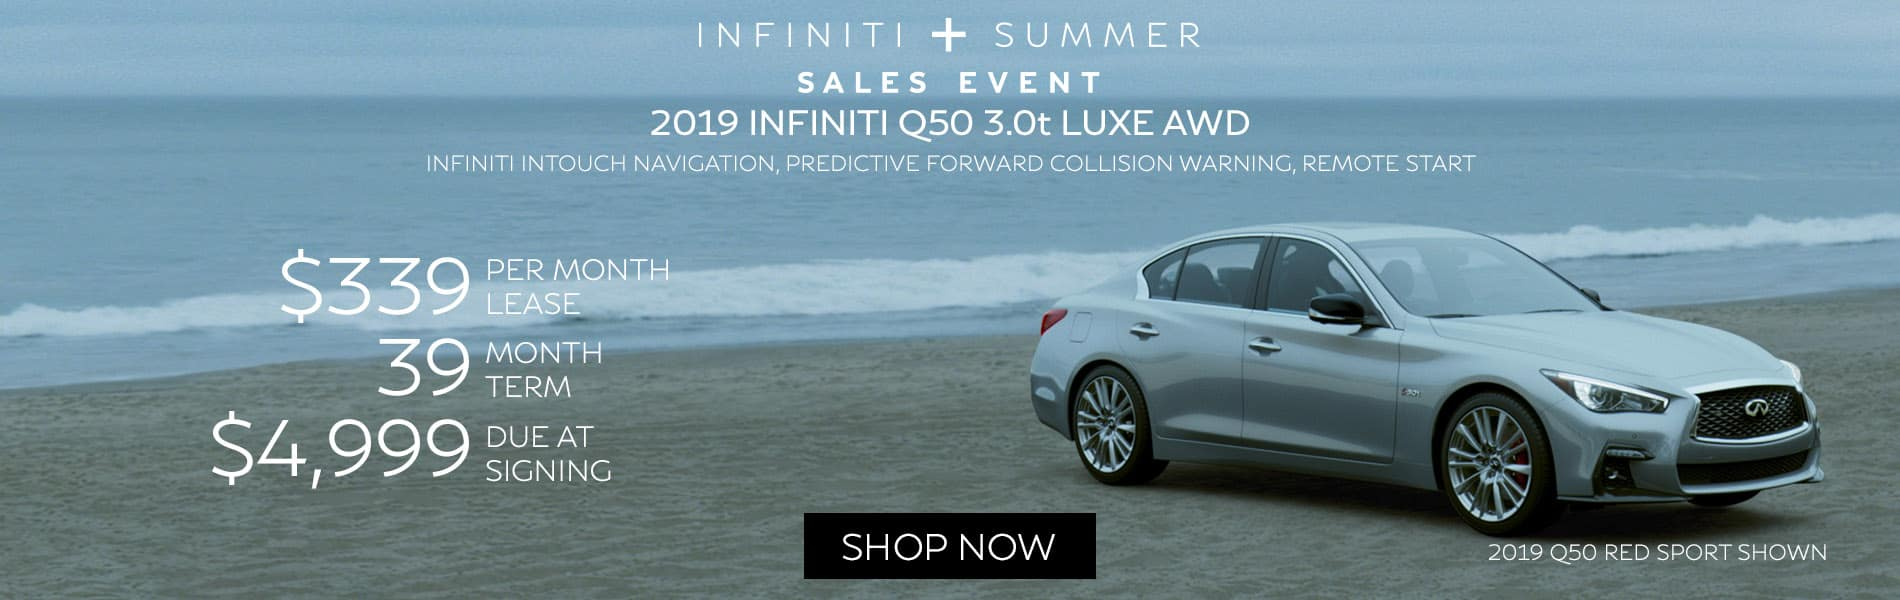 Lease a 2019 Q50 3.0t LUXE AWD for $339 per month with $4,999 due at signing